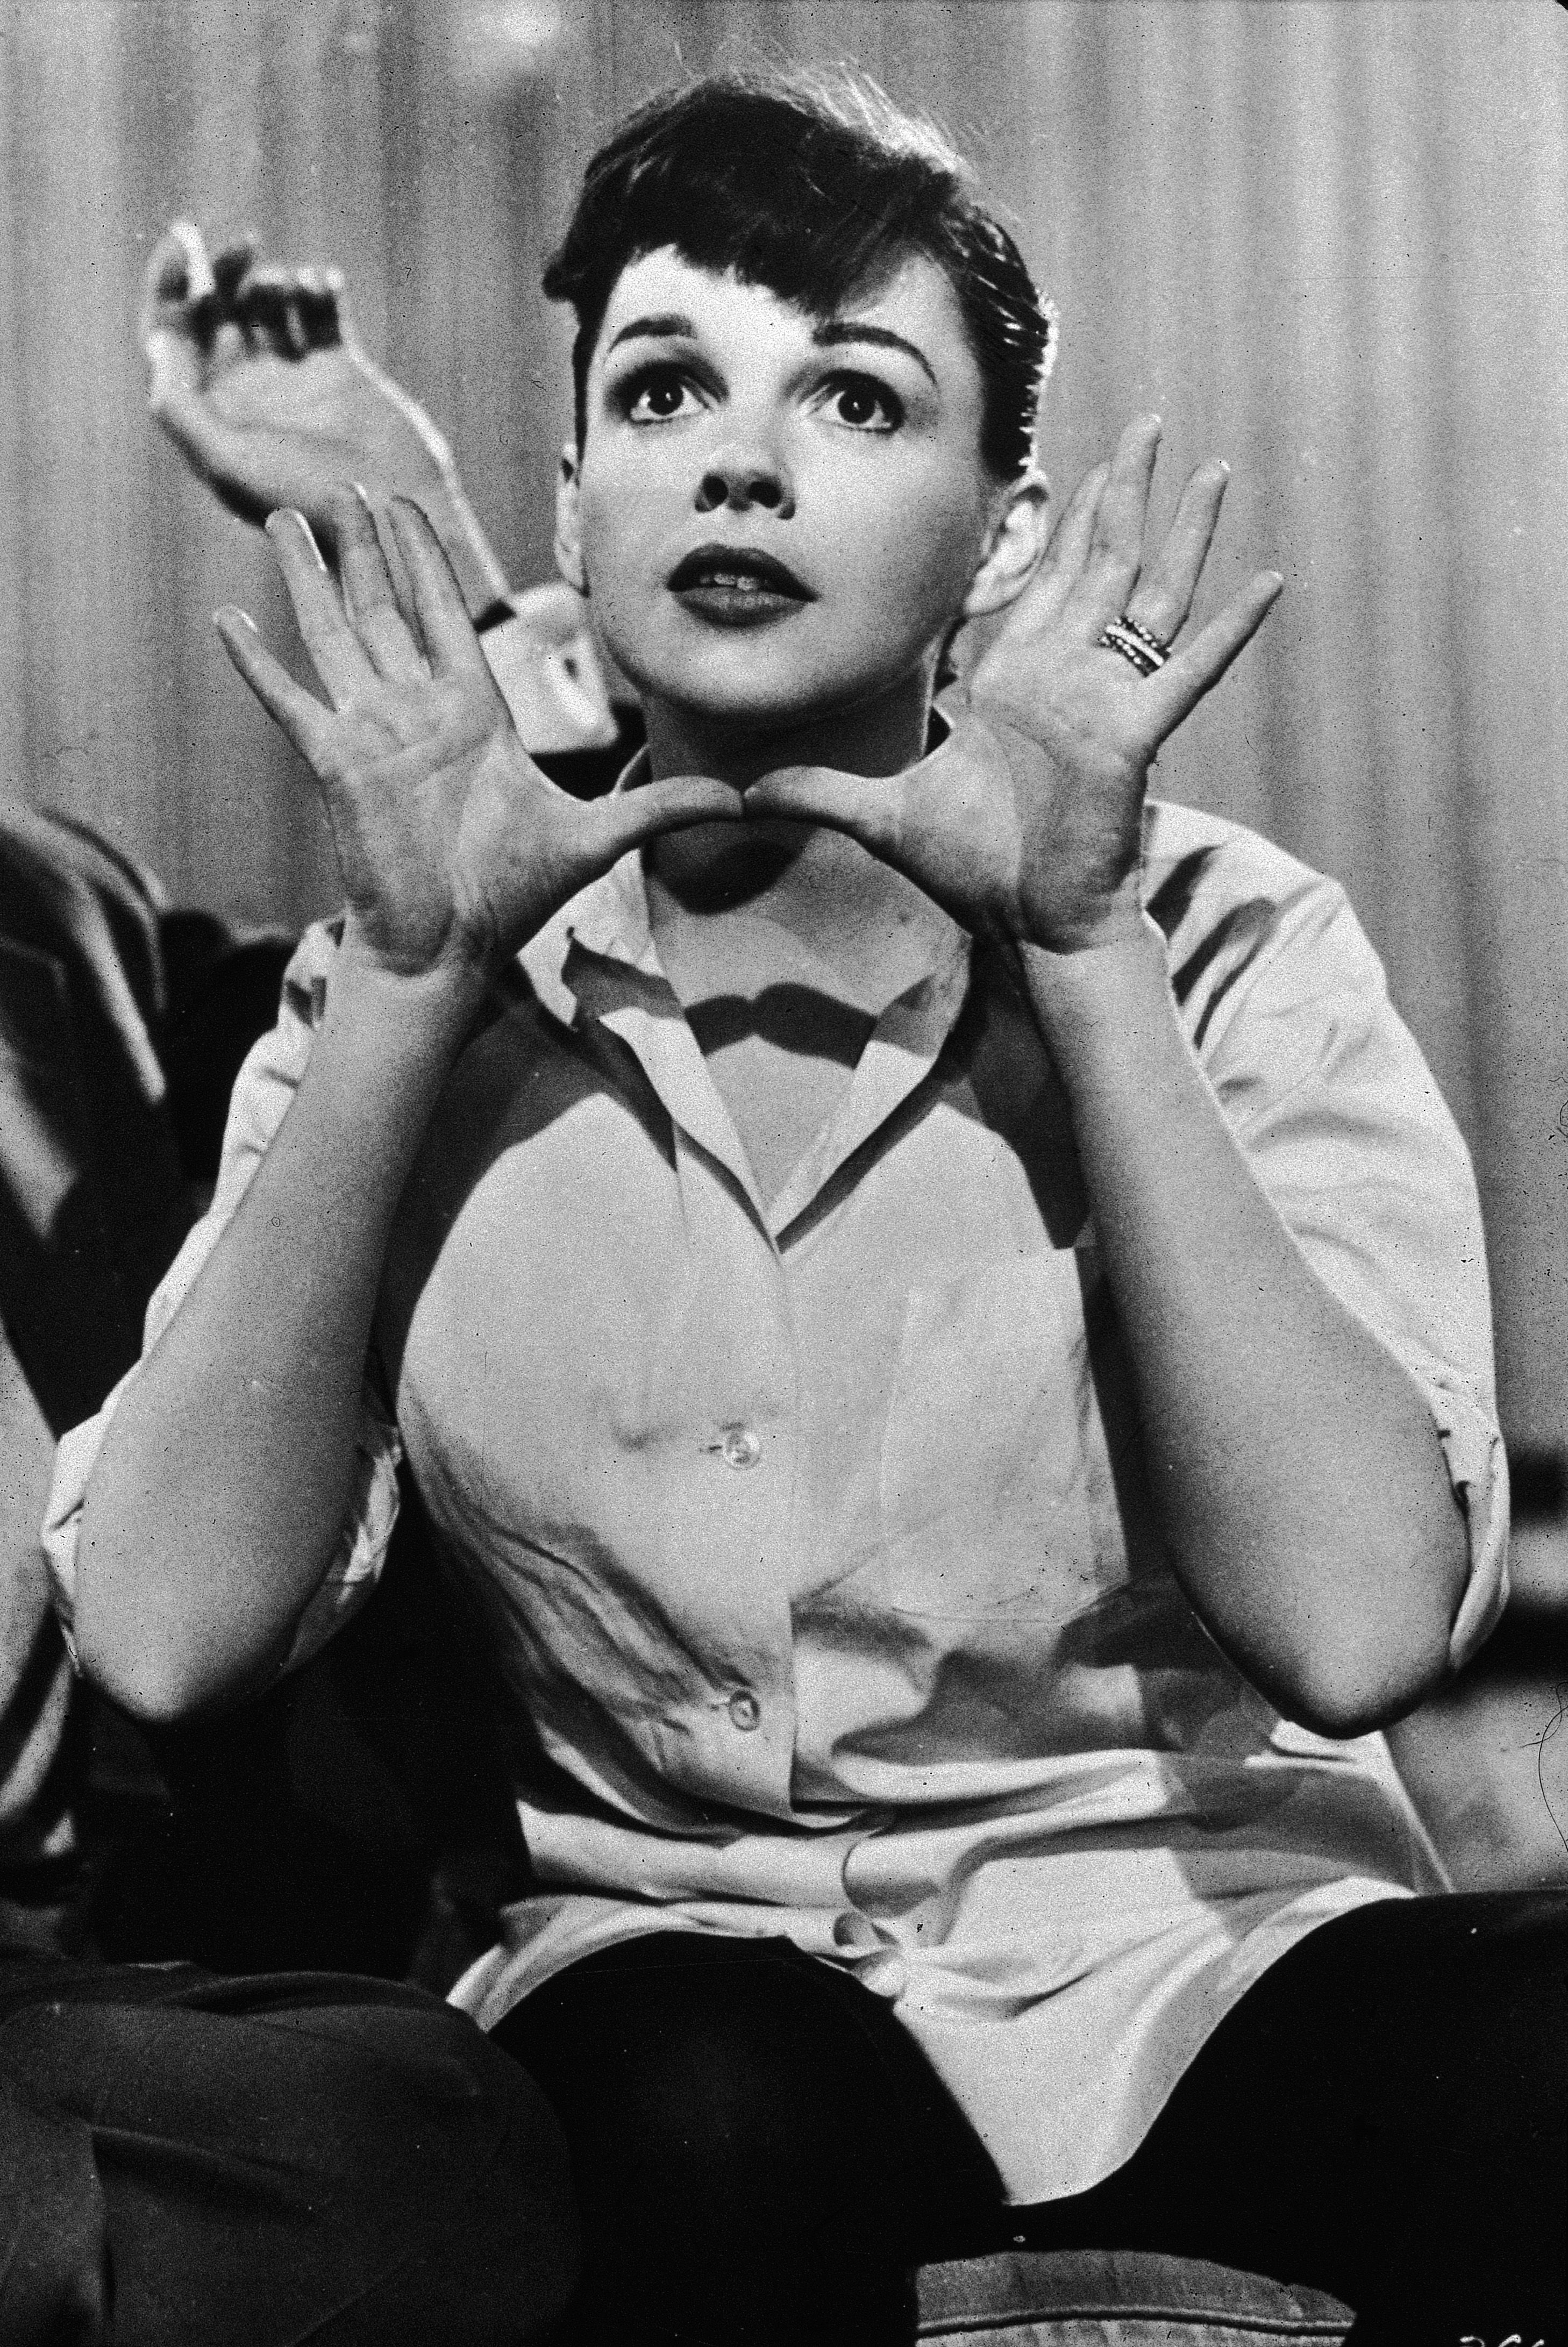 Judy Garland (1922-1969) holds her hands up near her face, circa 1950s. | Source: Getty Images